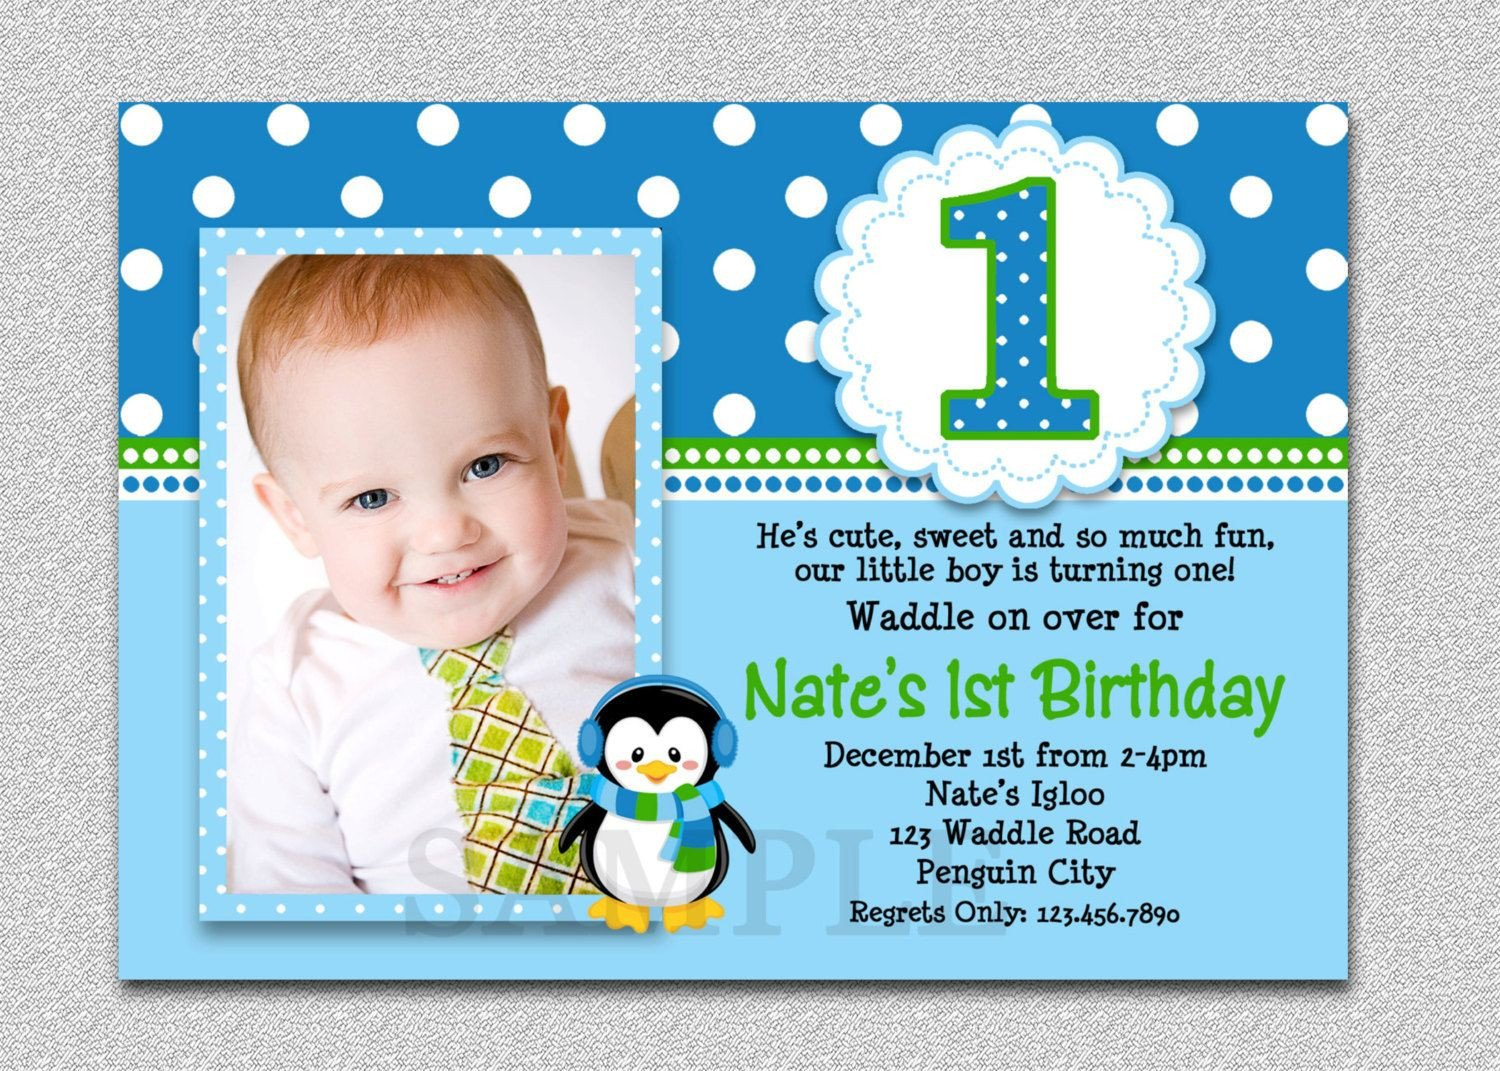 1st Birthday Invitation Template 1st Birthday Invitations Stuff to Buy